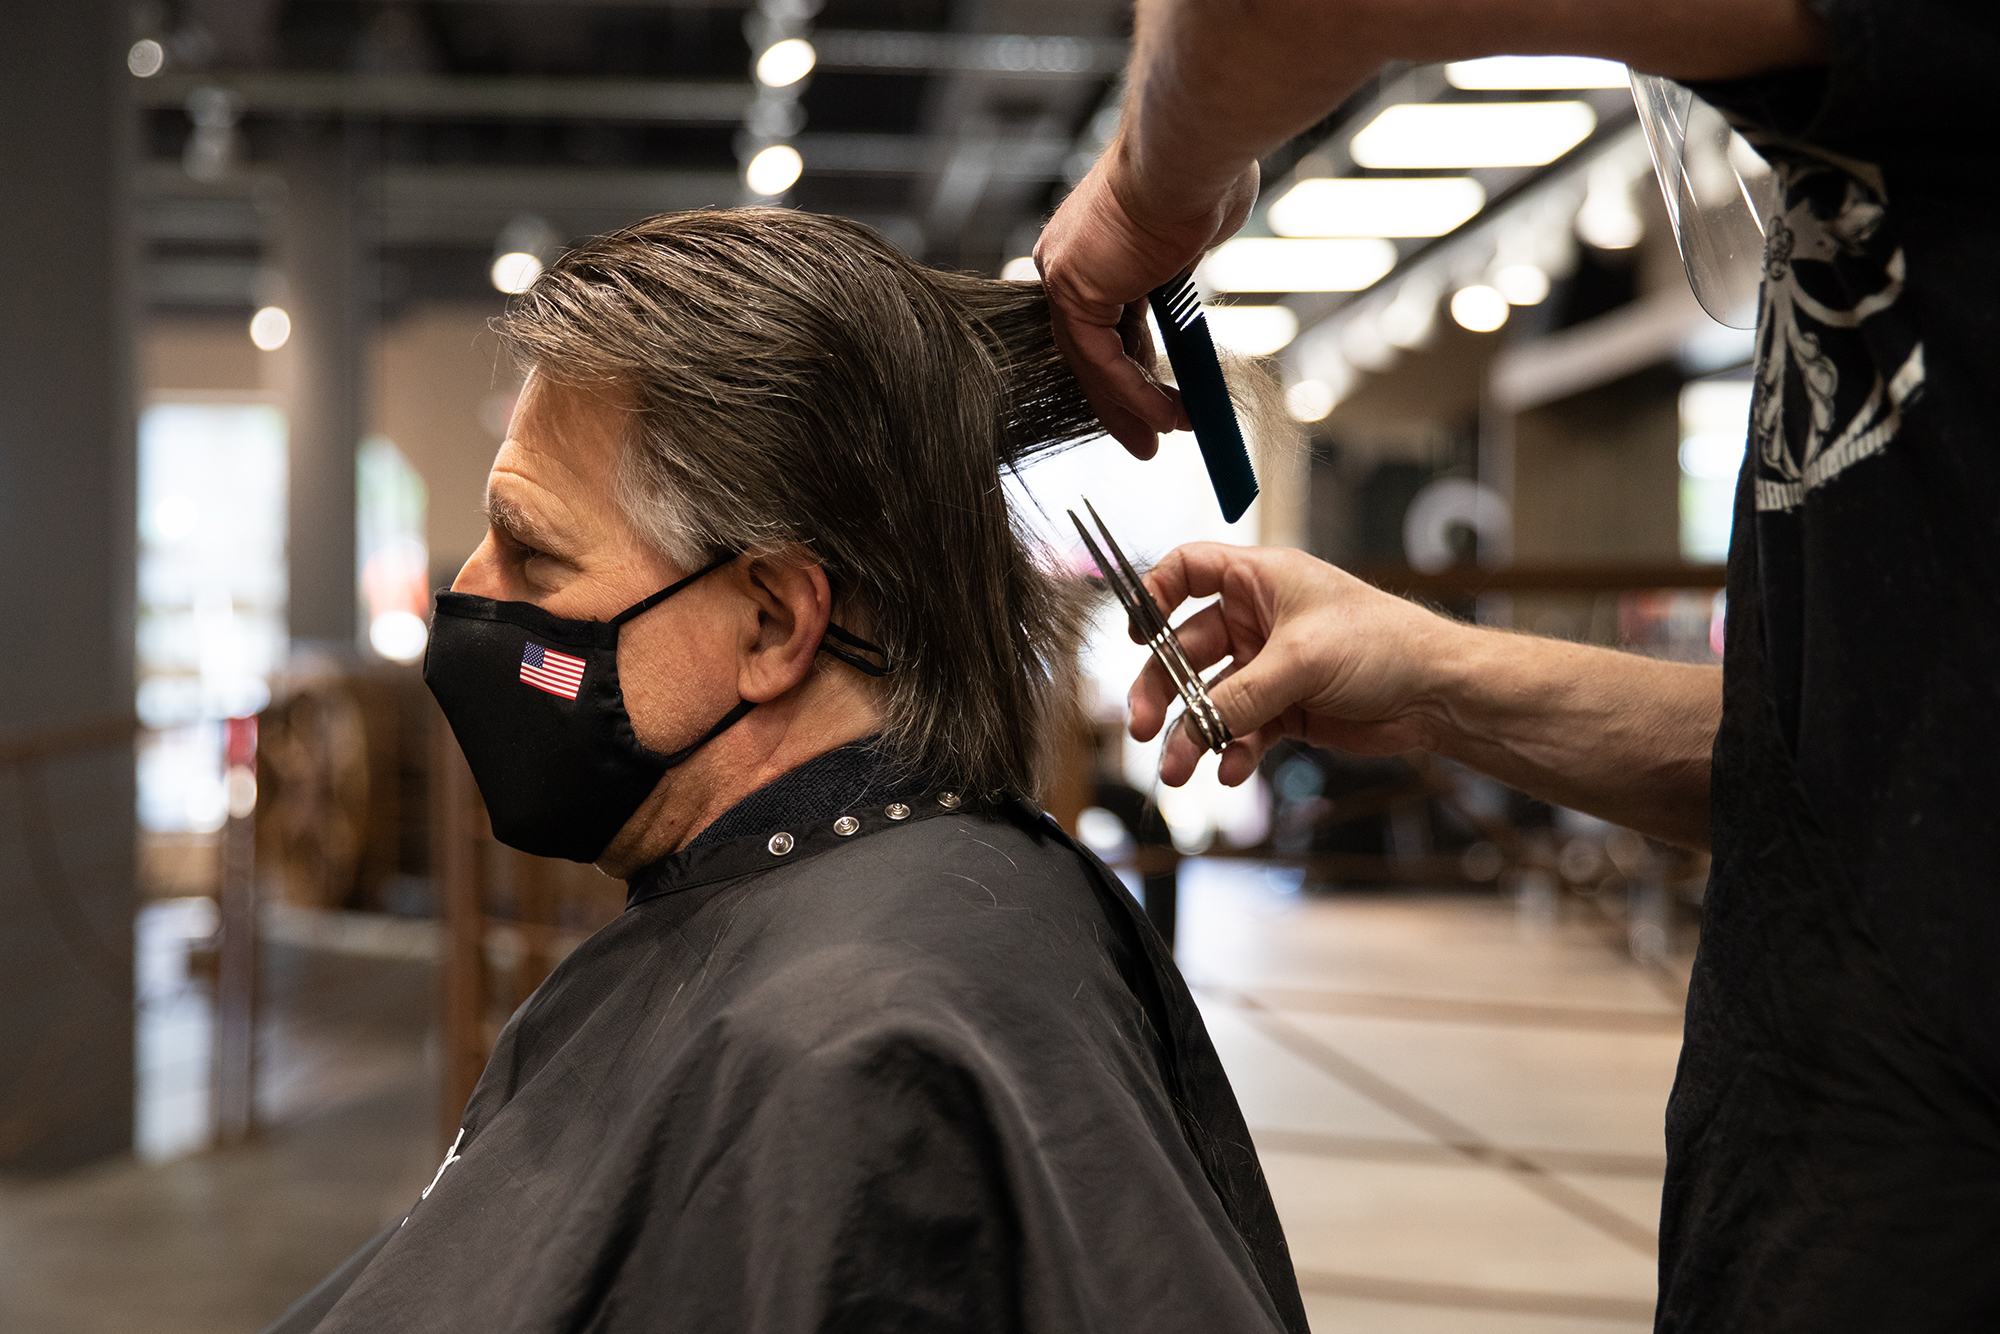 A customer wearing a protective mask receives a haircut at a salon in Royal Oak, Michigan, on June 15, 2020.